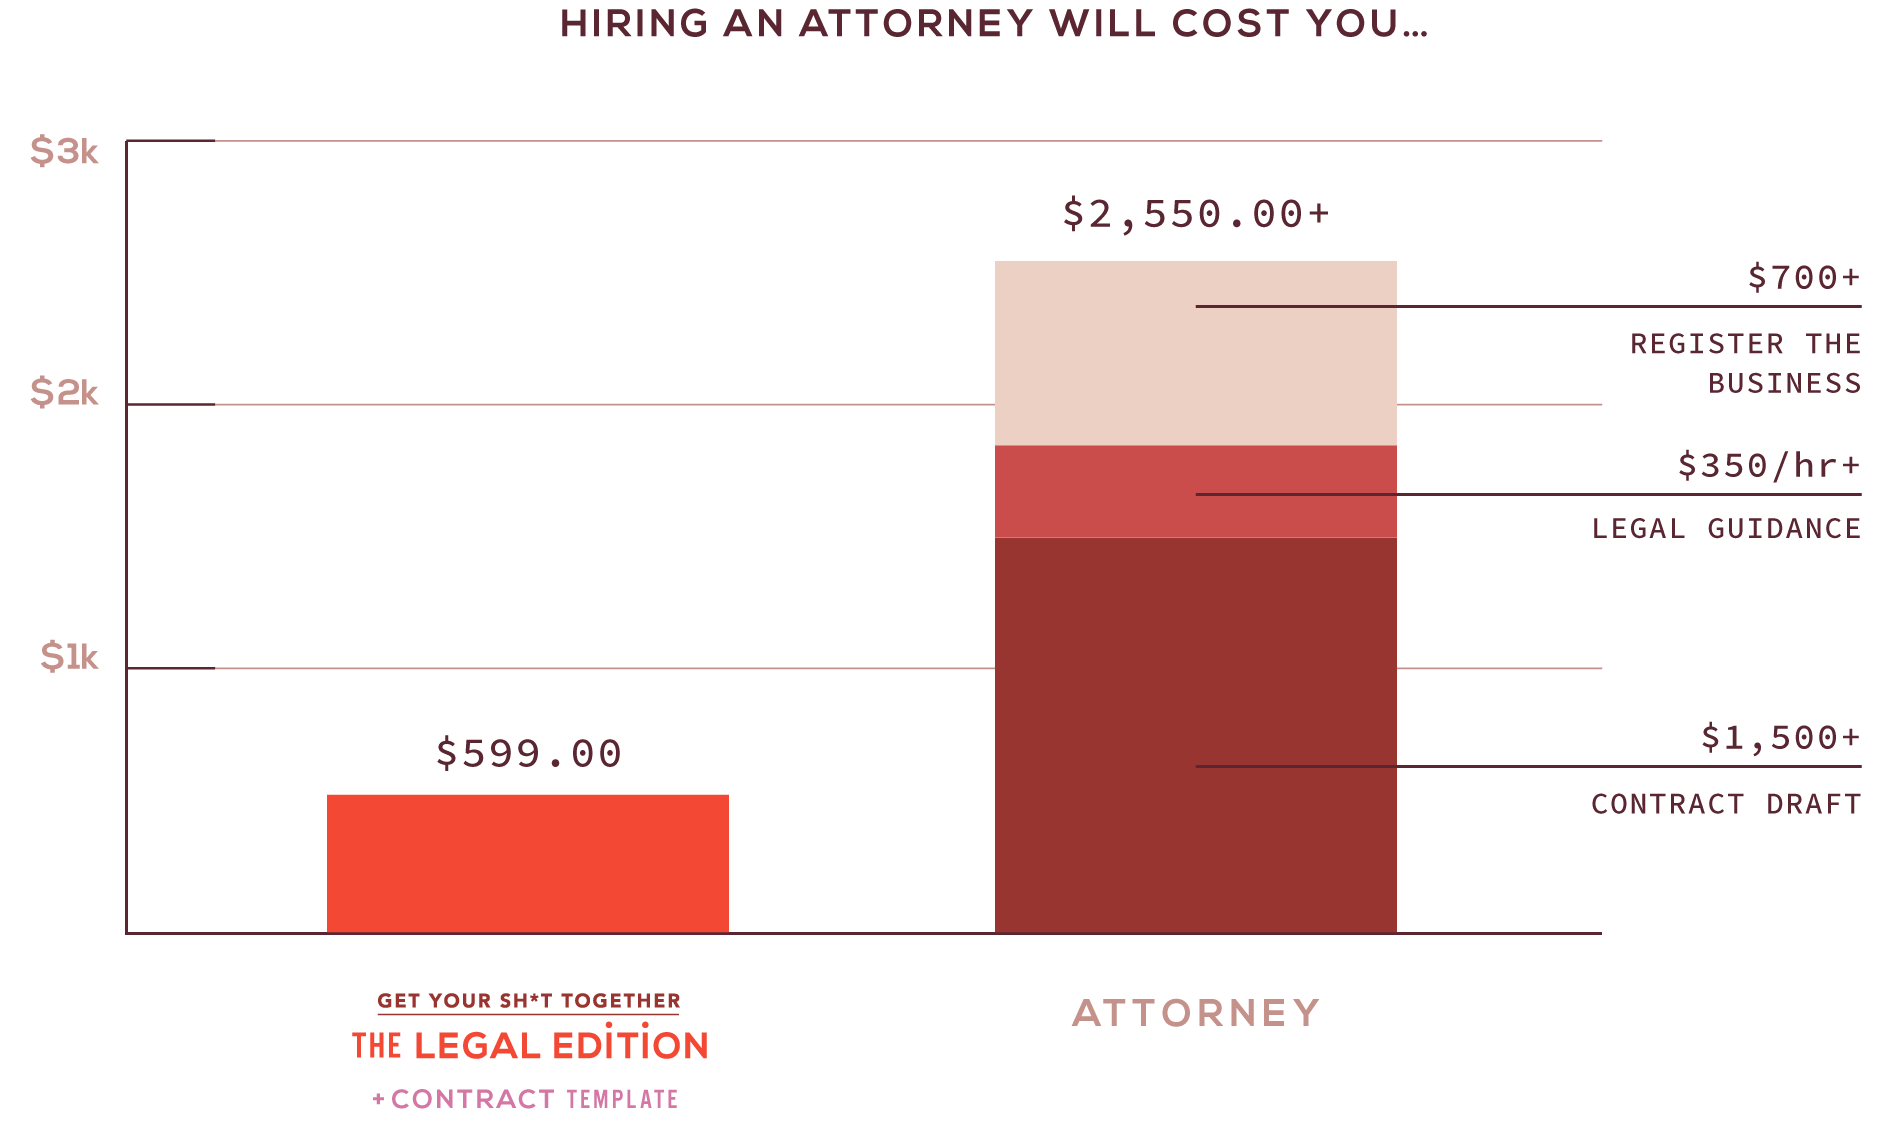 The cost of hiring an attorney comparison